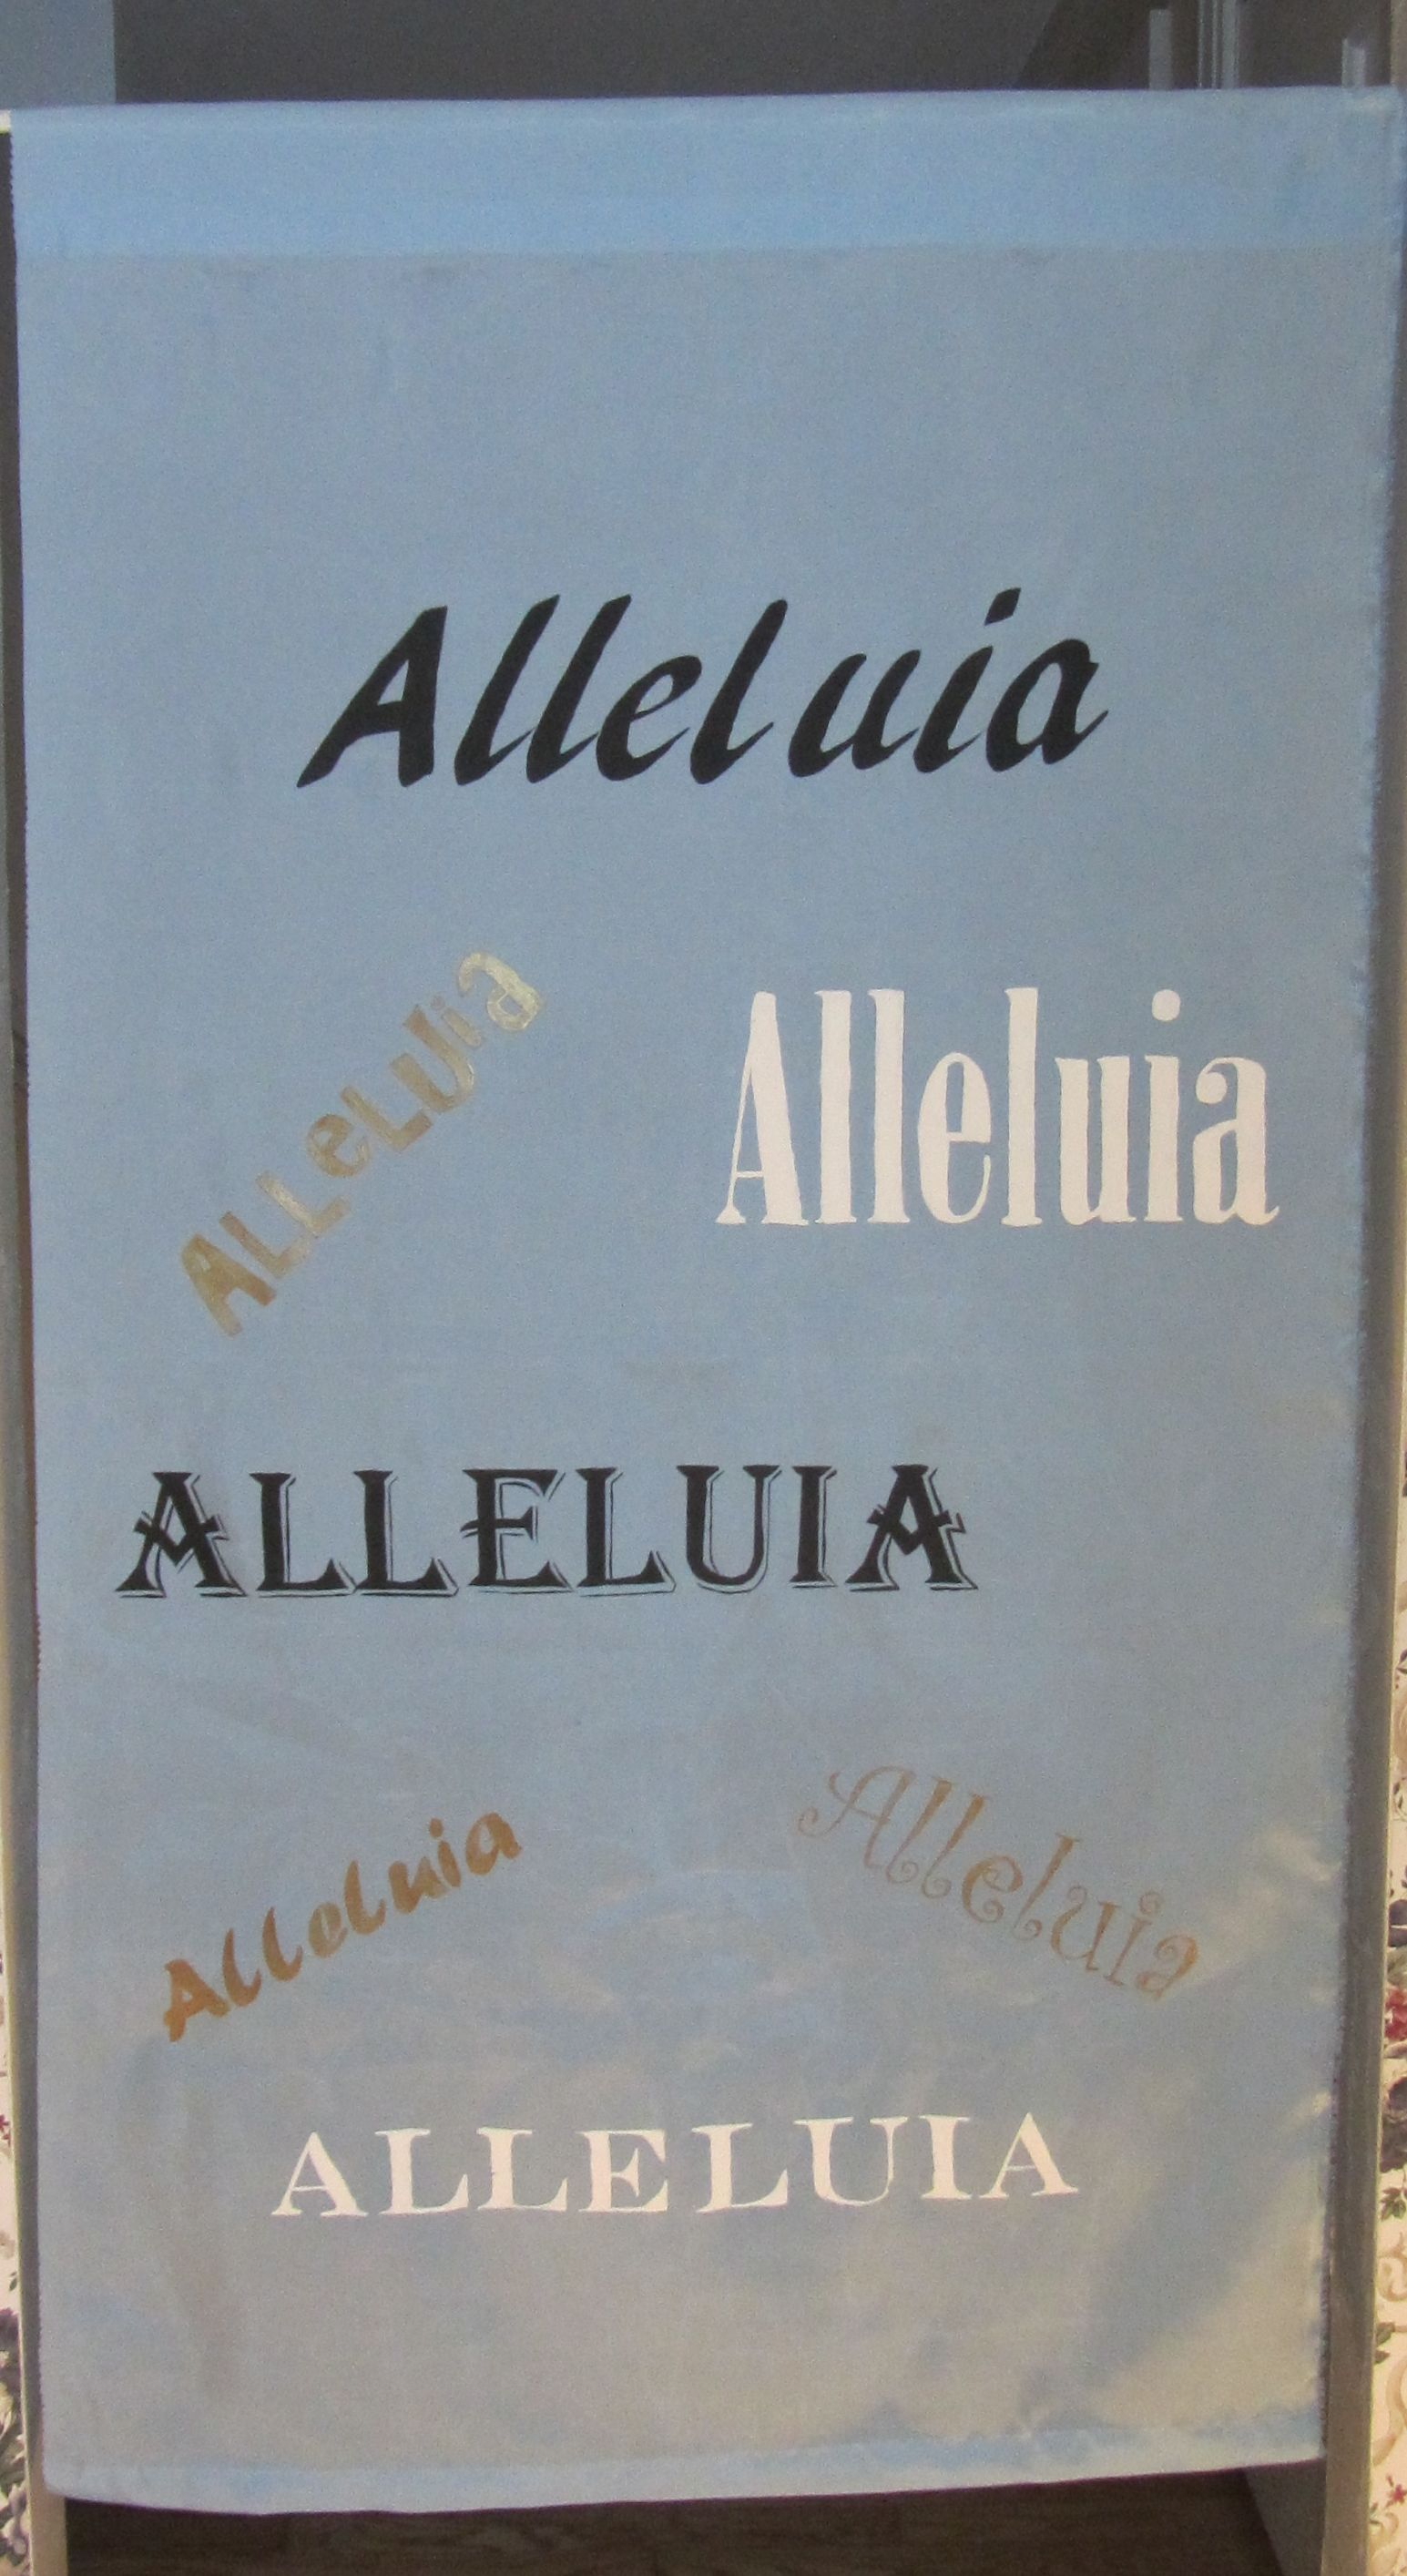 Alleluia Banner To Put Away For Lent During Mardi Gras